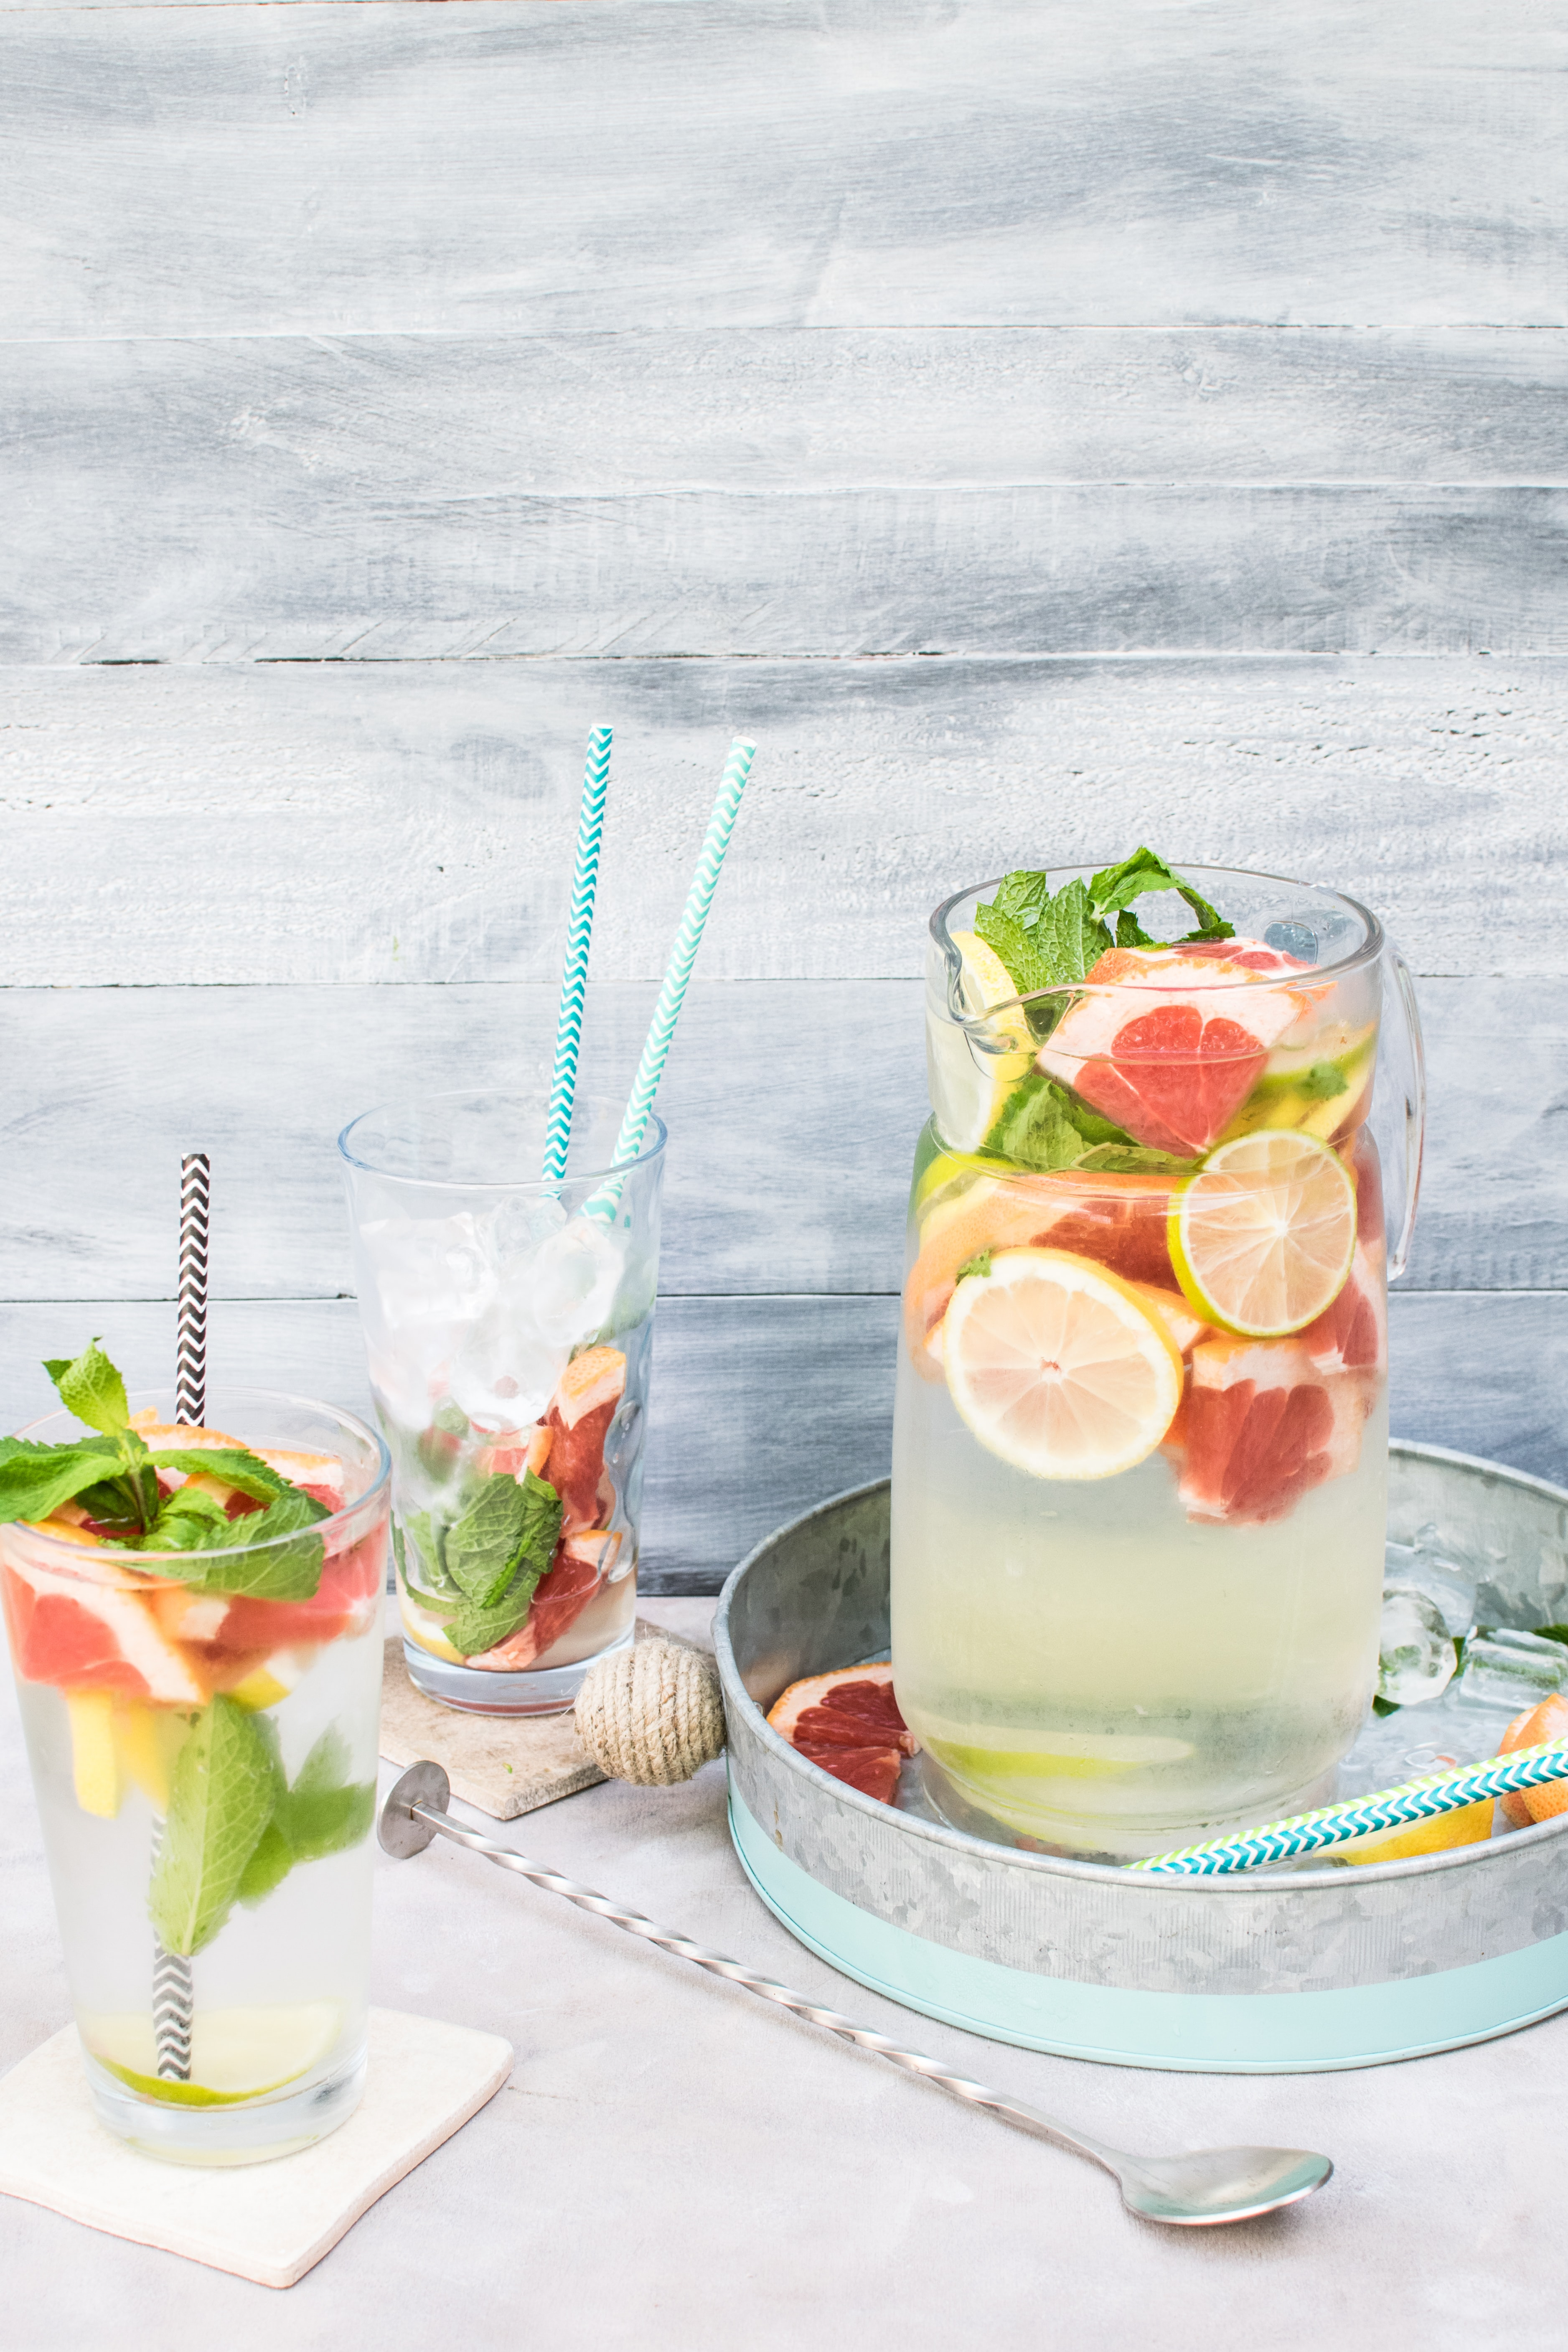 A cocktail table with a pitcher and two glasses filled with ice, lemons, grapefruits, mint, and more